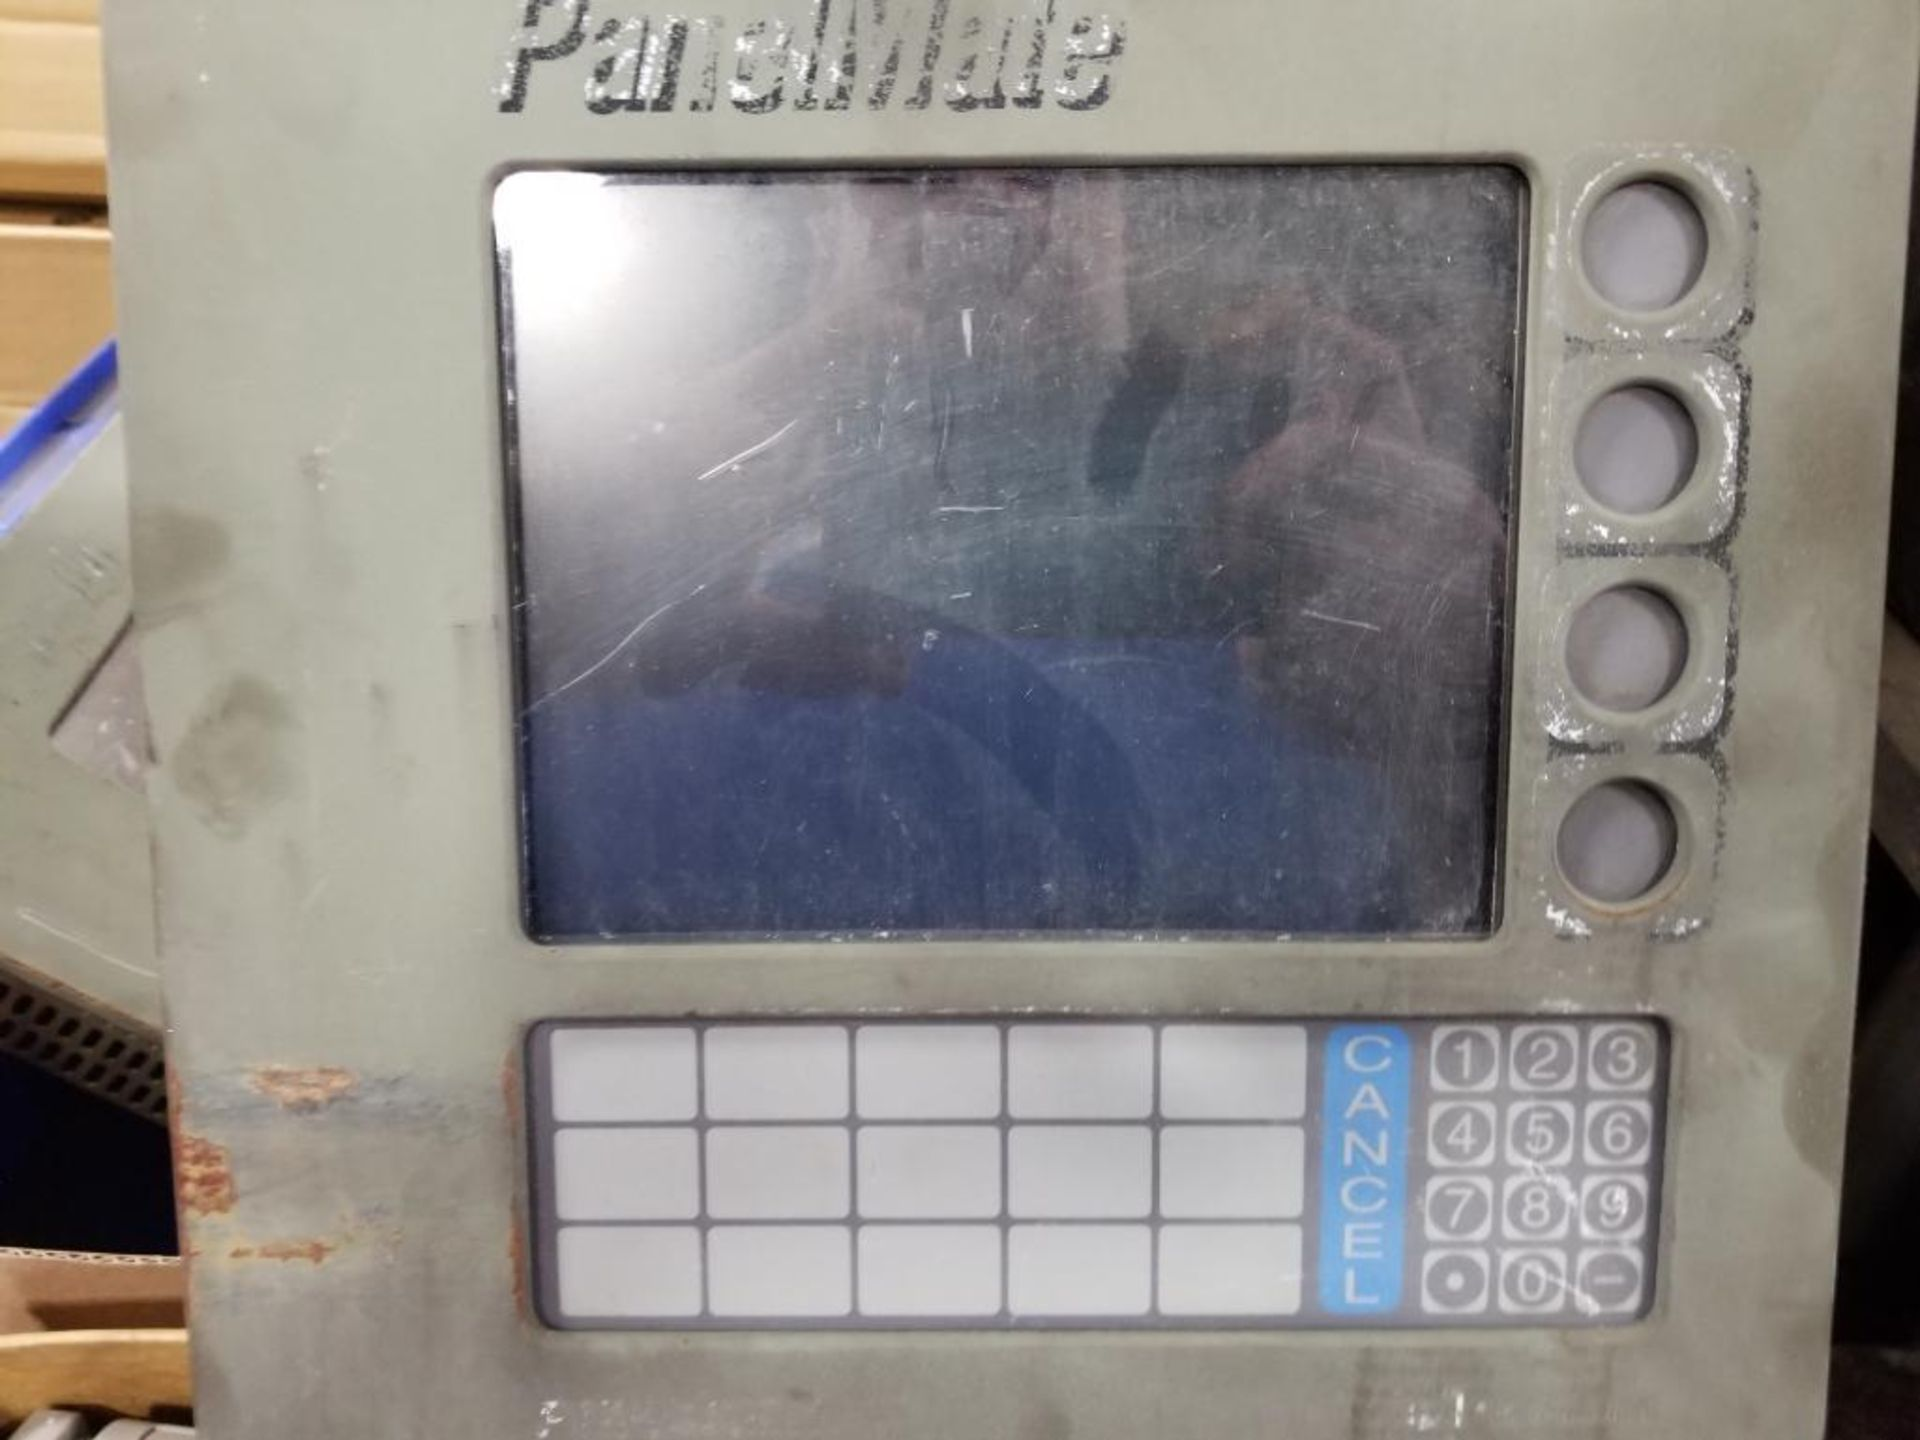 Qty 3 - Cutler Hammer Panelmate. One marked repaired. - Image 4 of 8